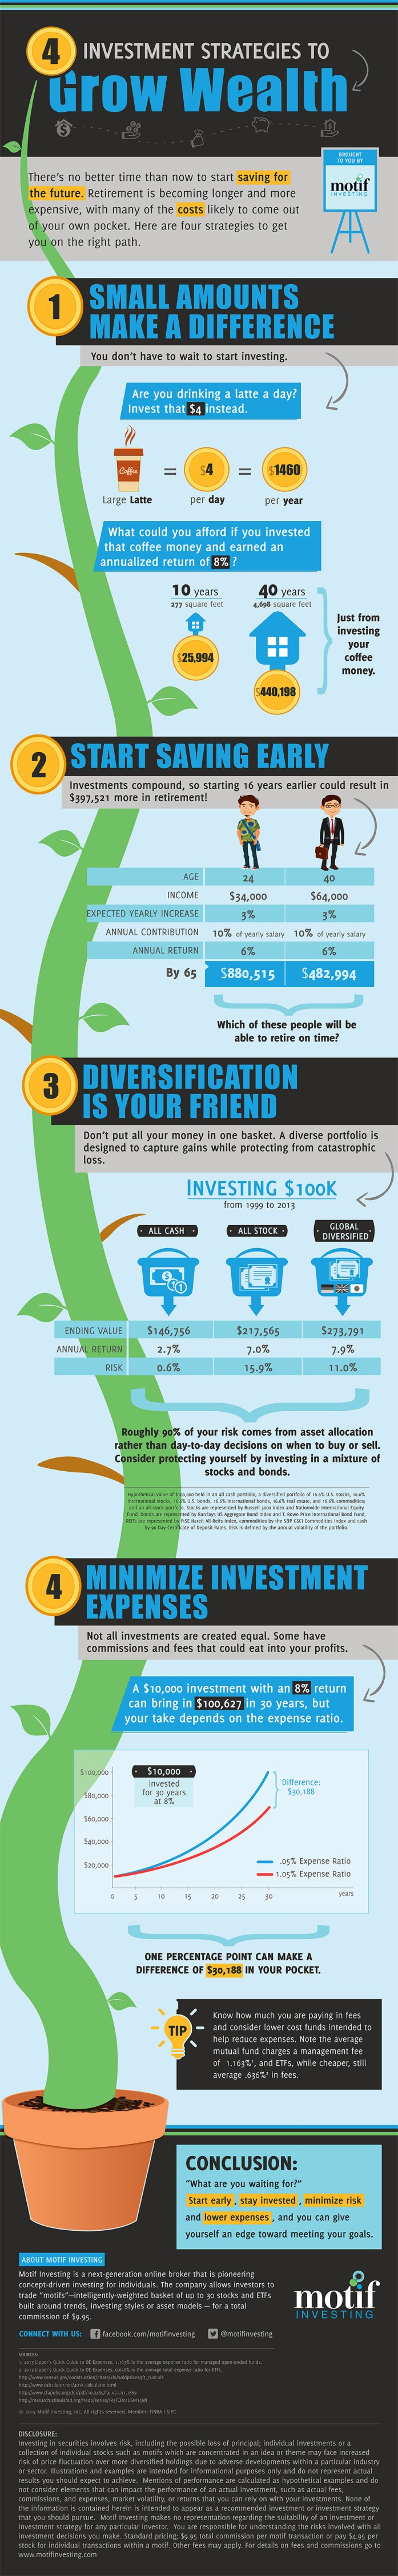 investing-tips-to-grow-wealth